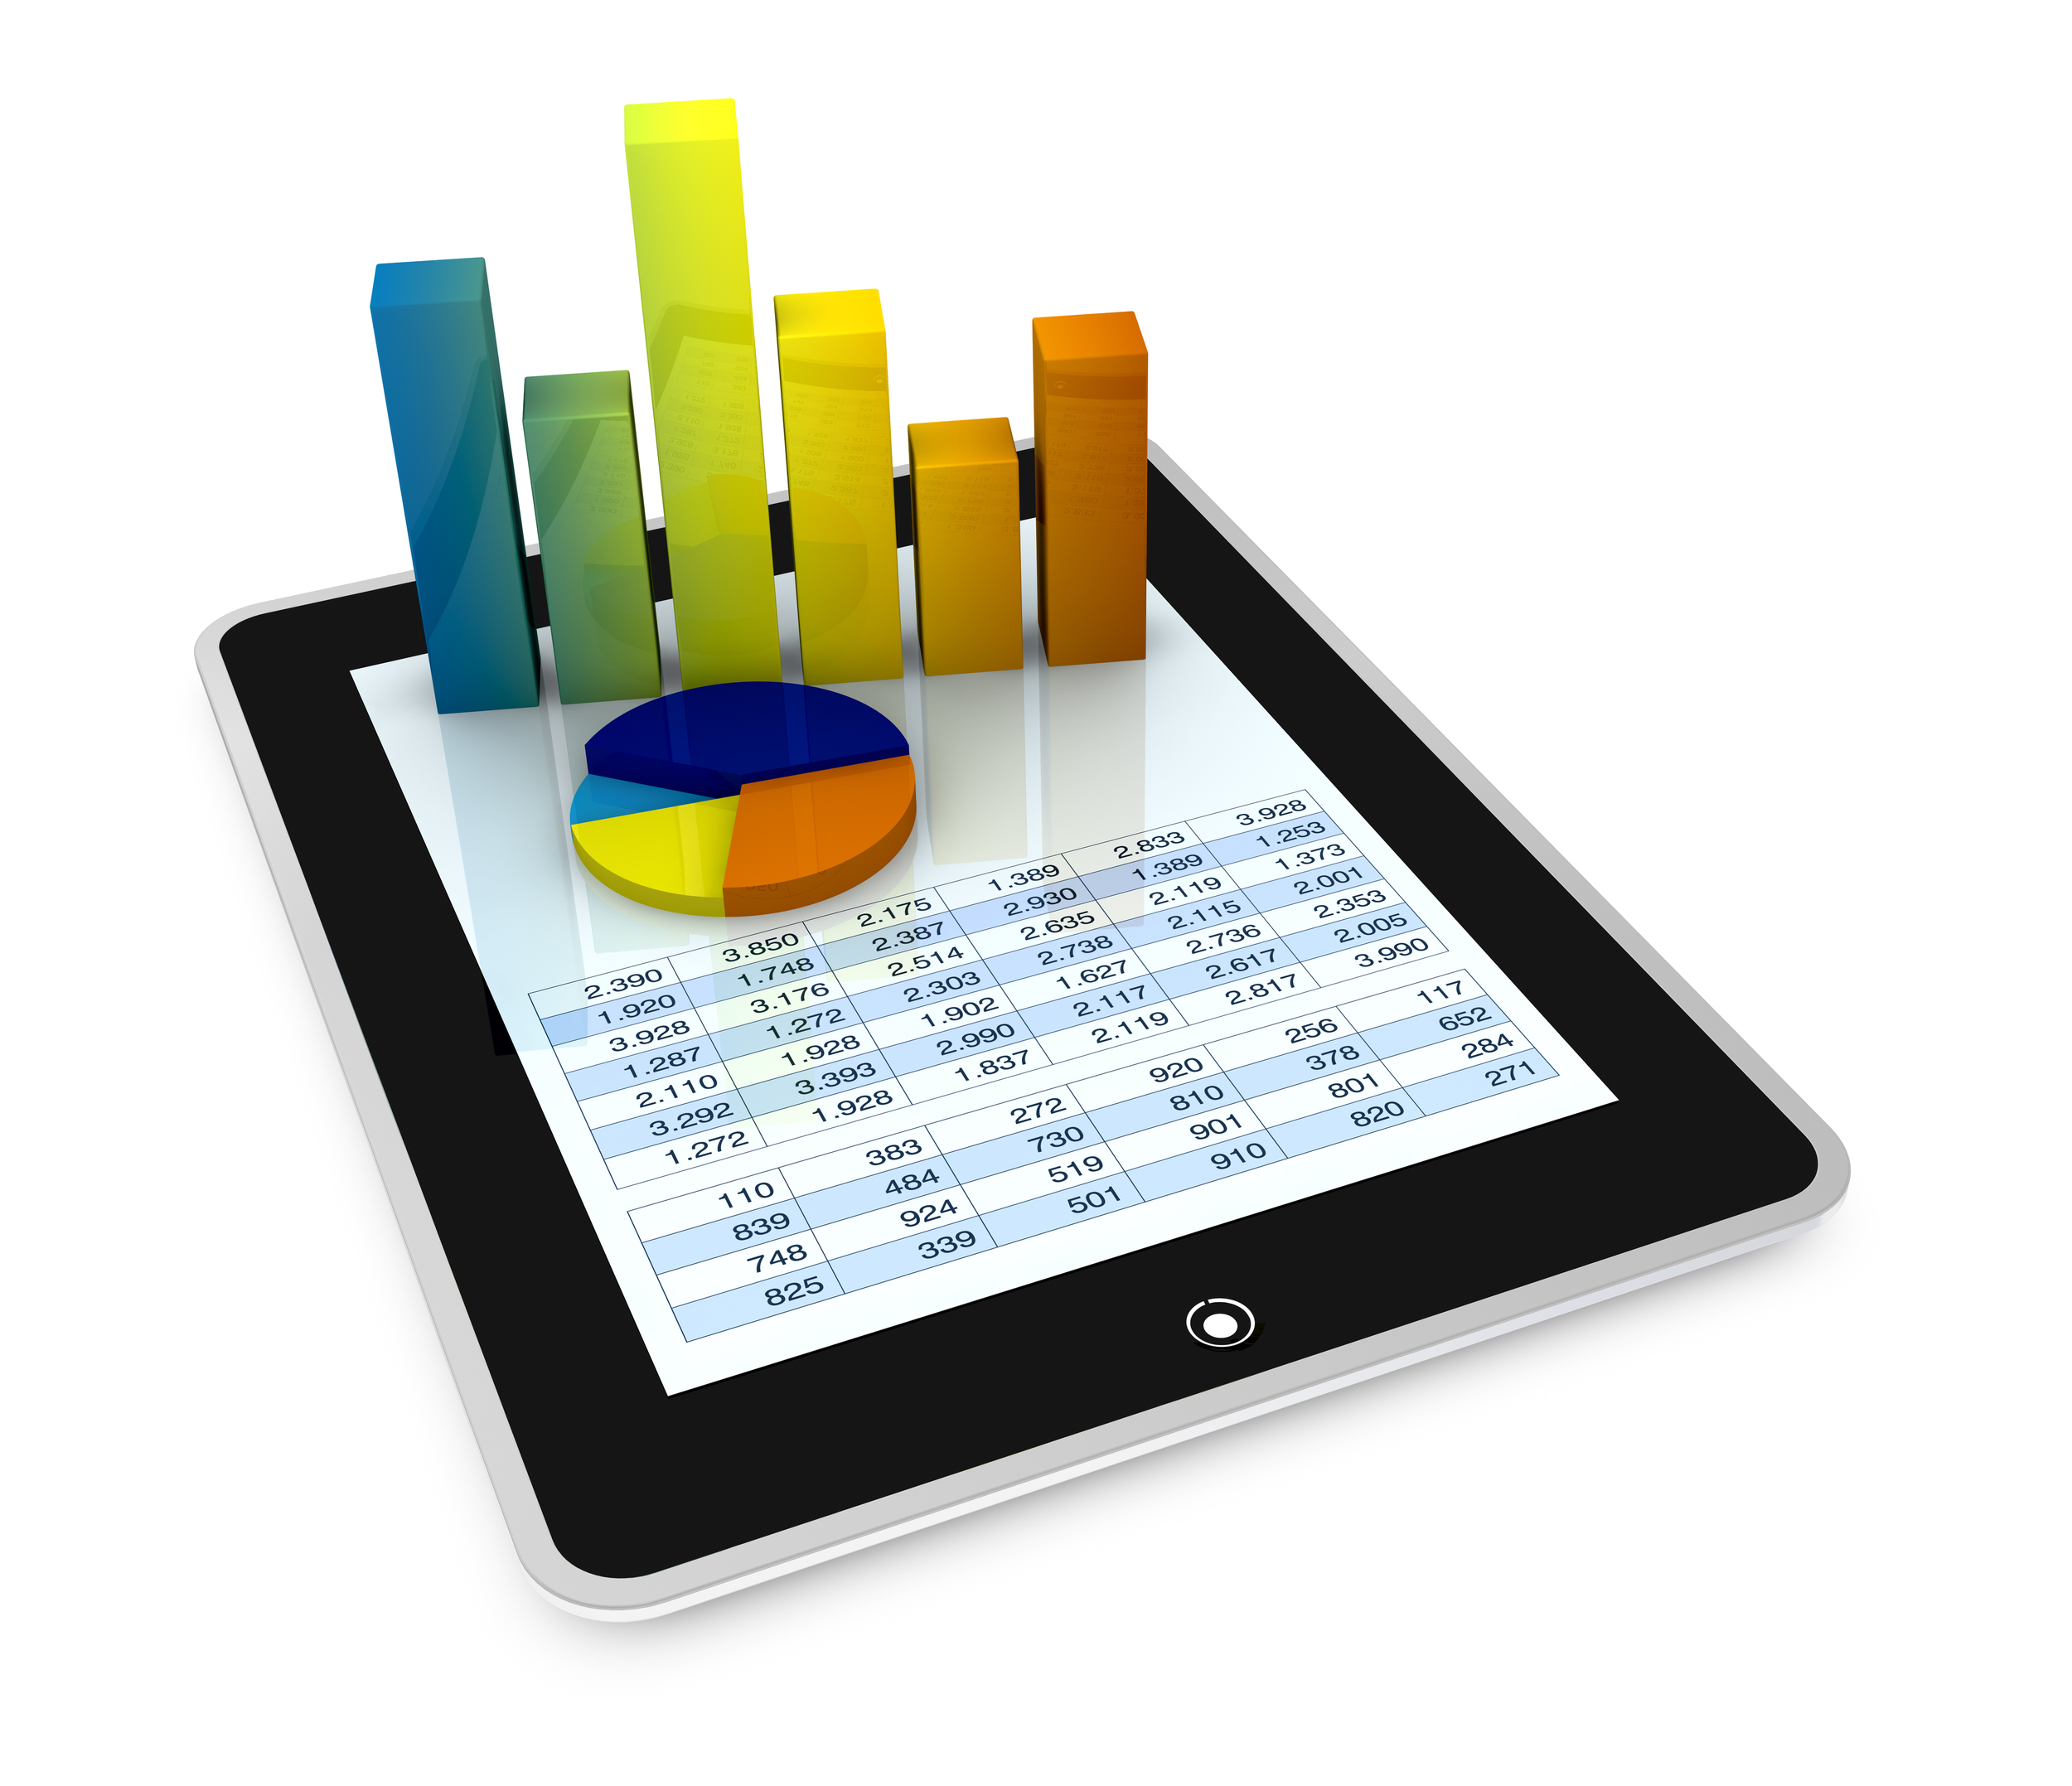 give your business a report on things that matter most, such as cash flow and future opportunities.   Financial performance and management information including cash flow projections with associated insight and advice on key risks and opportunities.